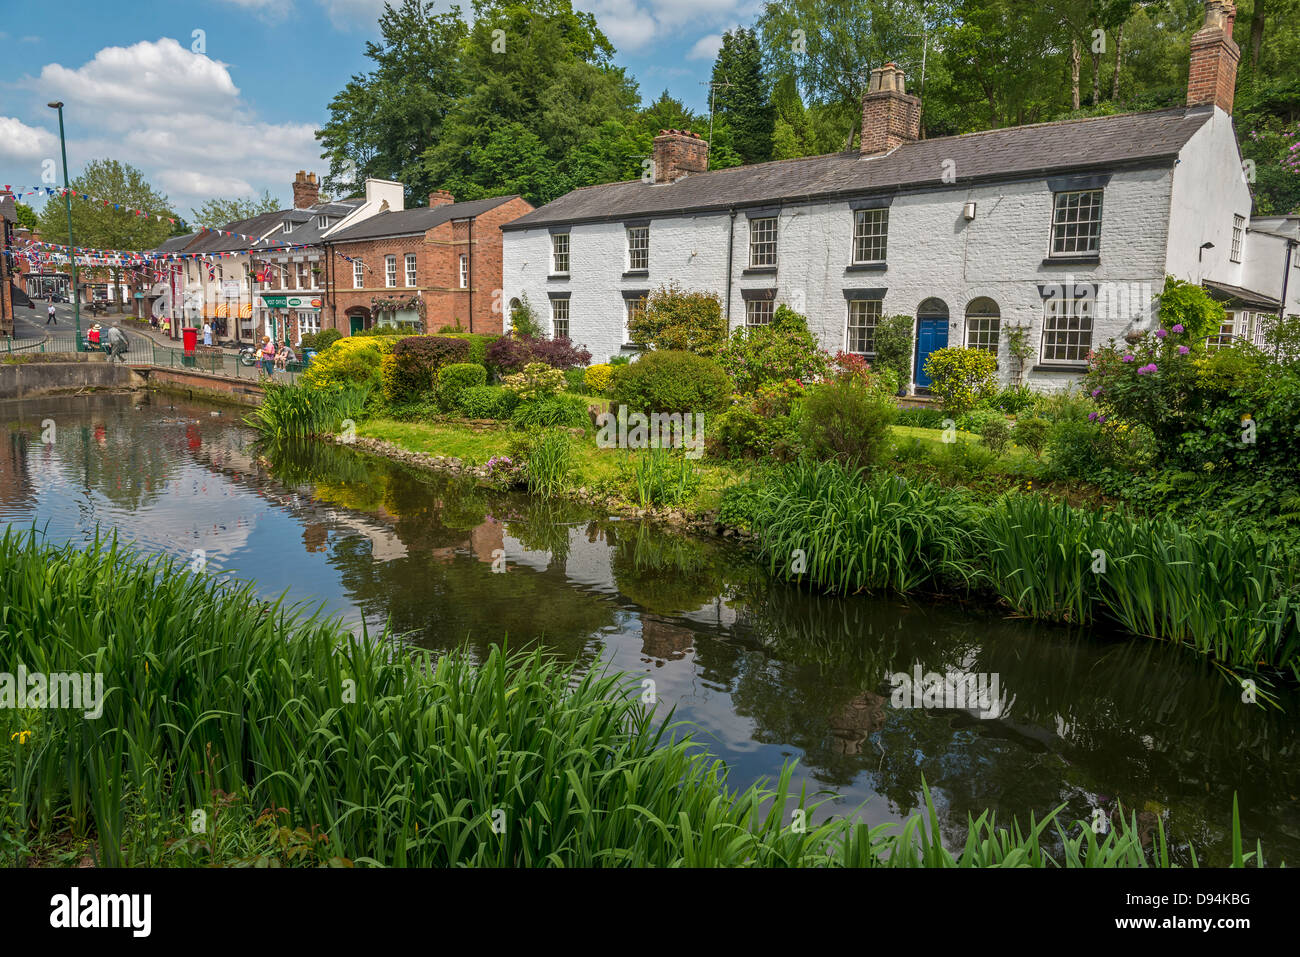 Cottages in the Grove at the bottom of the DIngle at Lymm in Cheshire North West England. - Stock Image